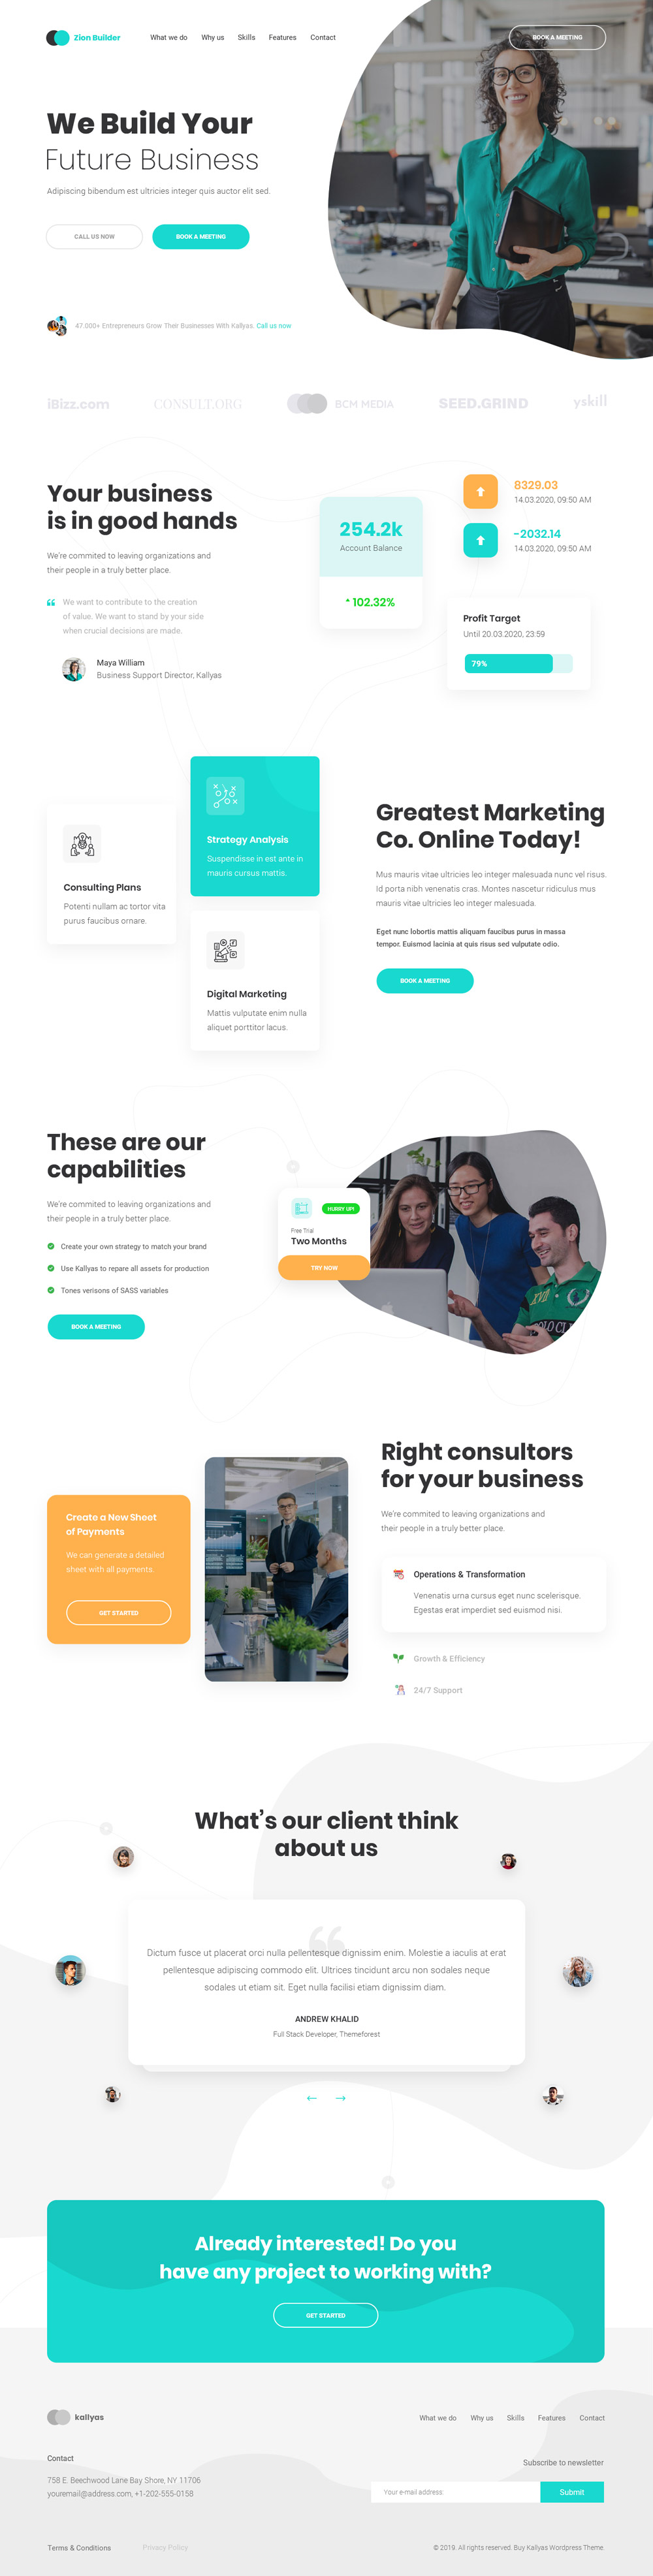 Consulting Agency V2- Free PSD Template